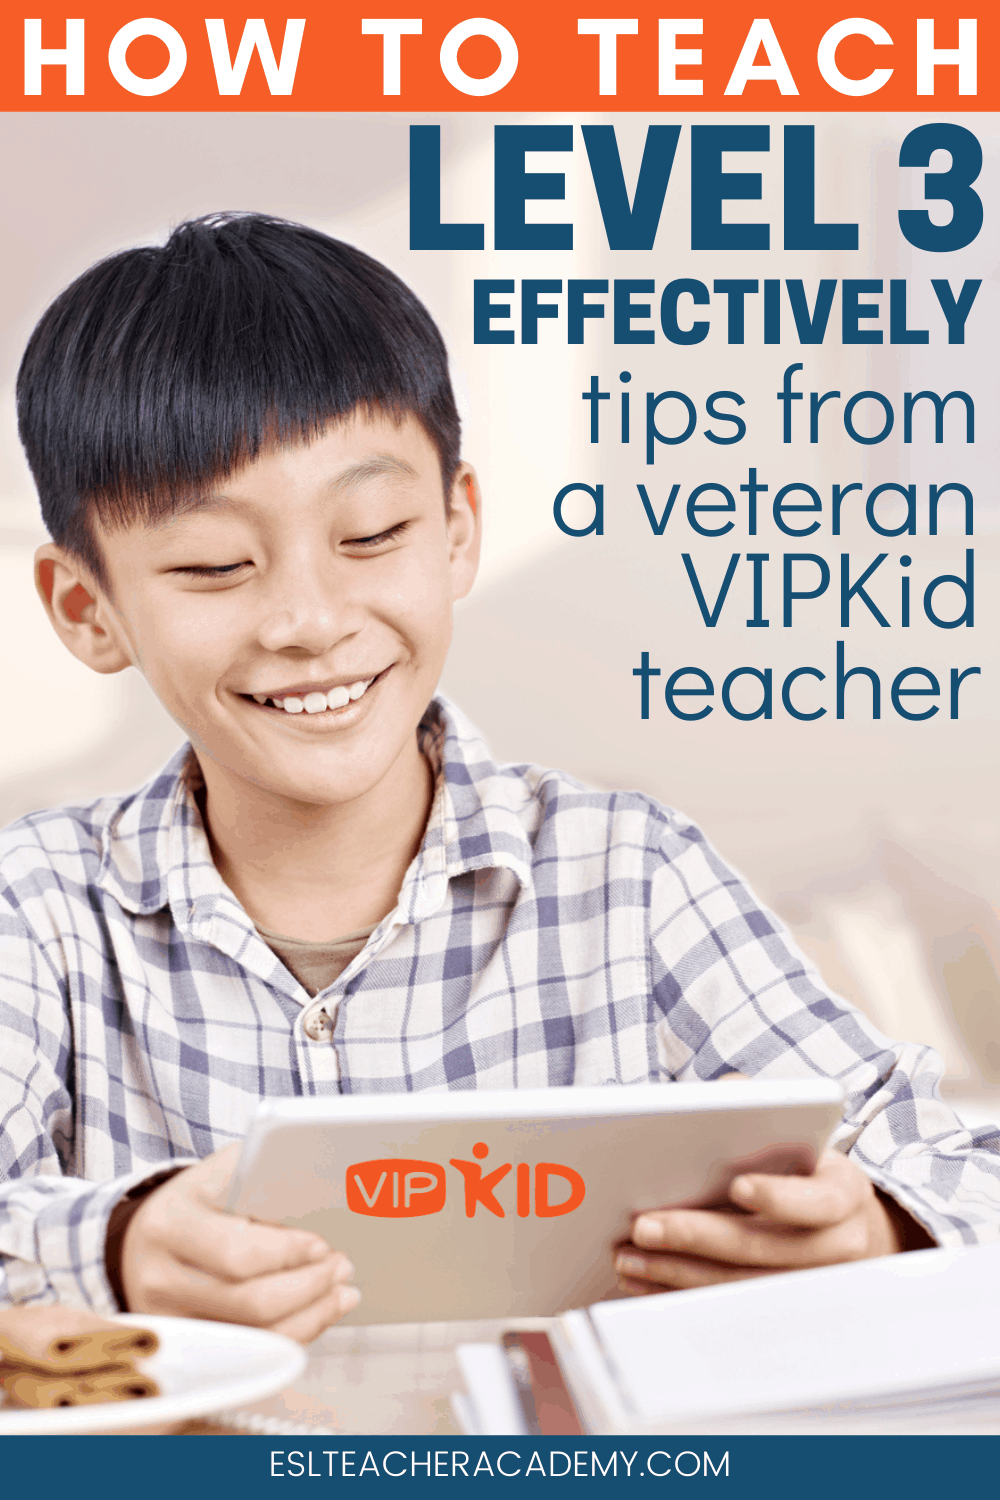 young male student taking VIPKid Level 3 classes on an iPad